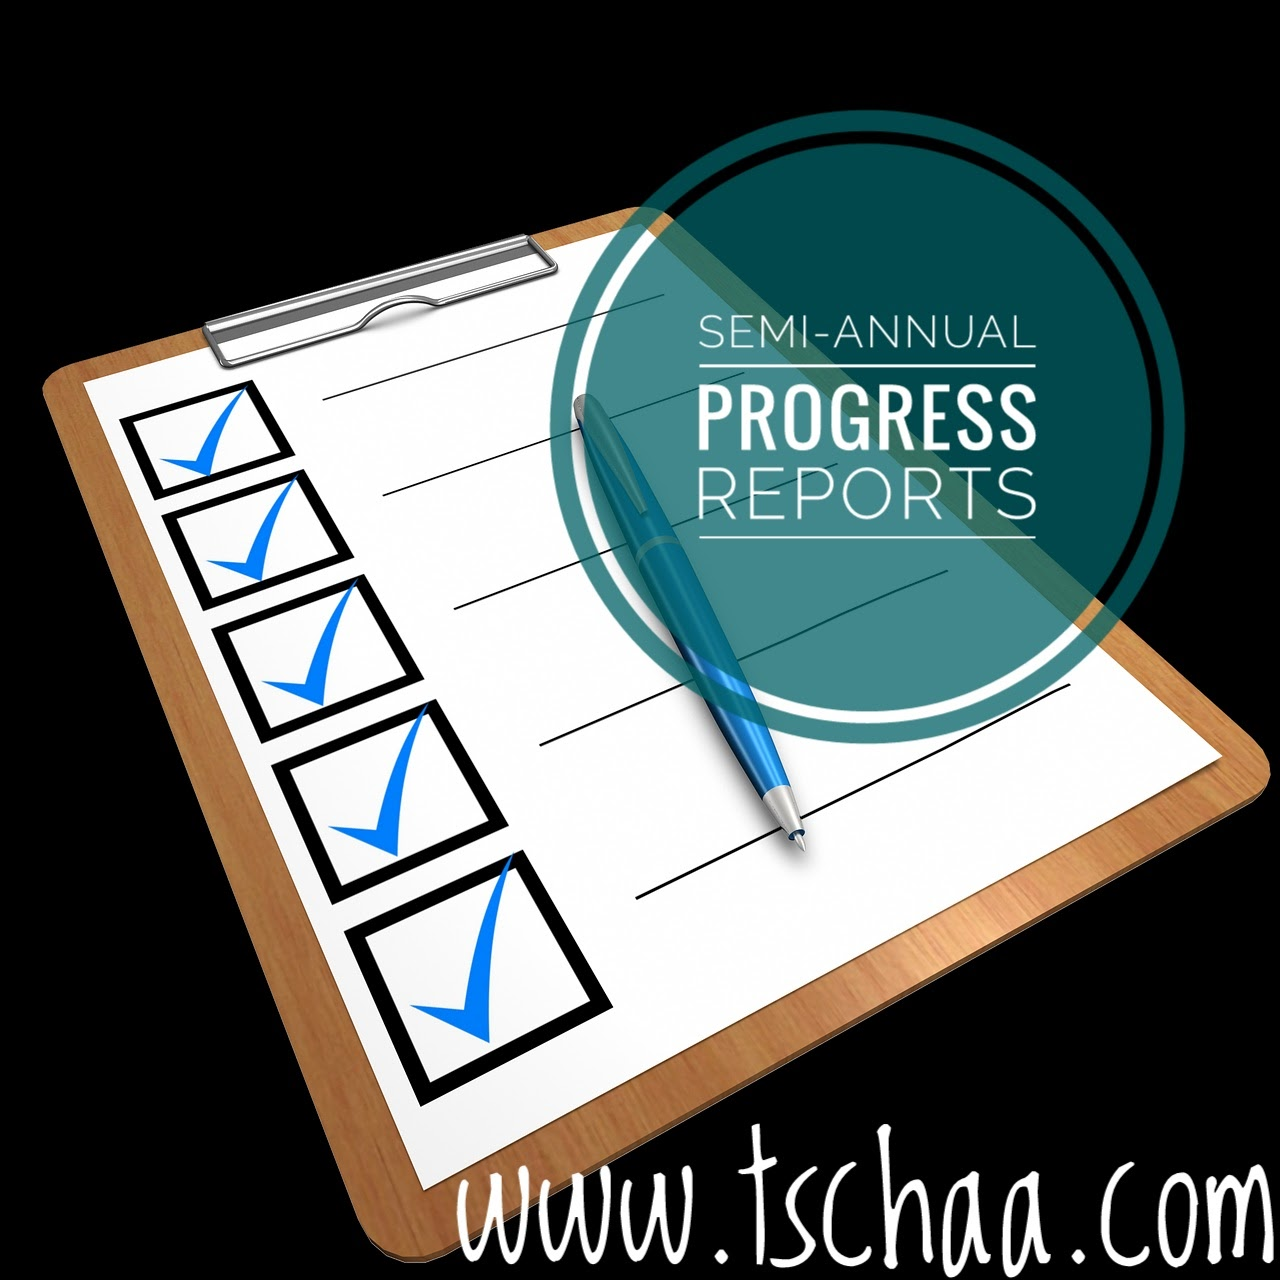 photograph relating to Homeschool Progress Report Printable called TSCHAA: Semi-Once-a-year Improvements Studies